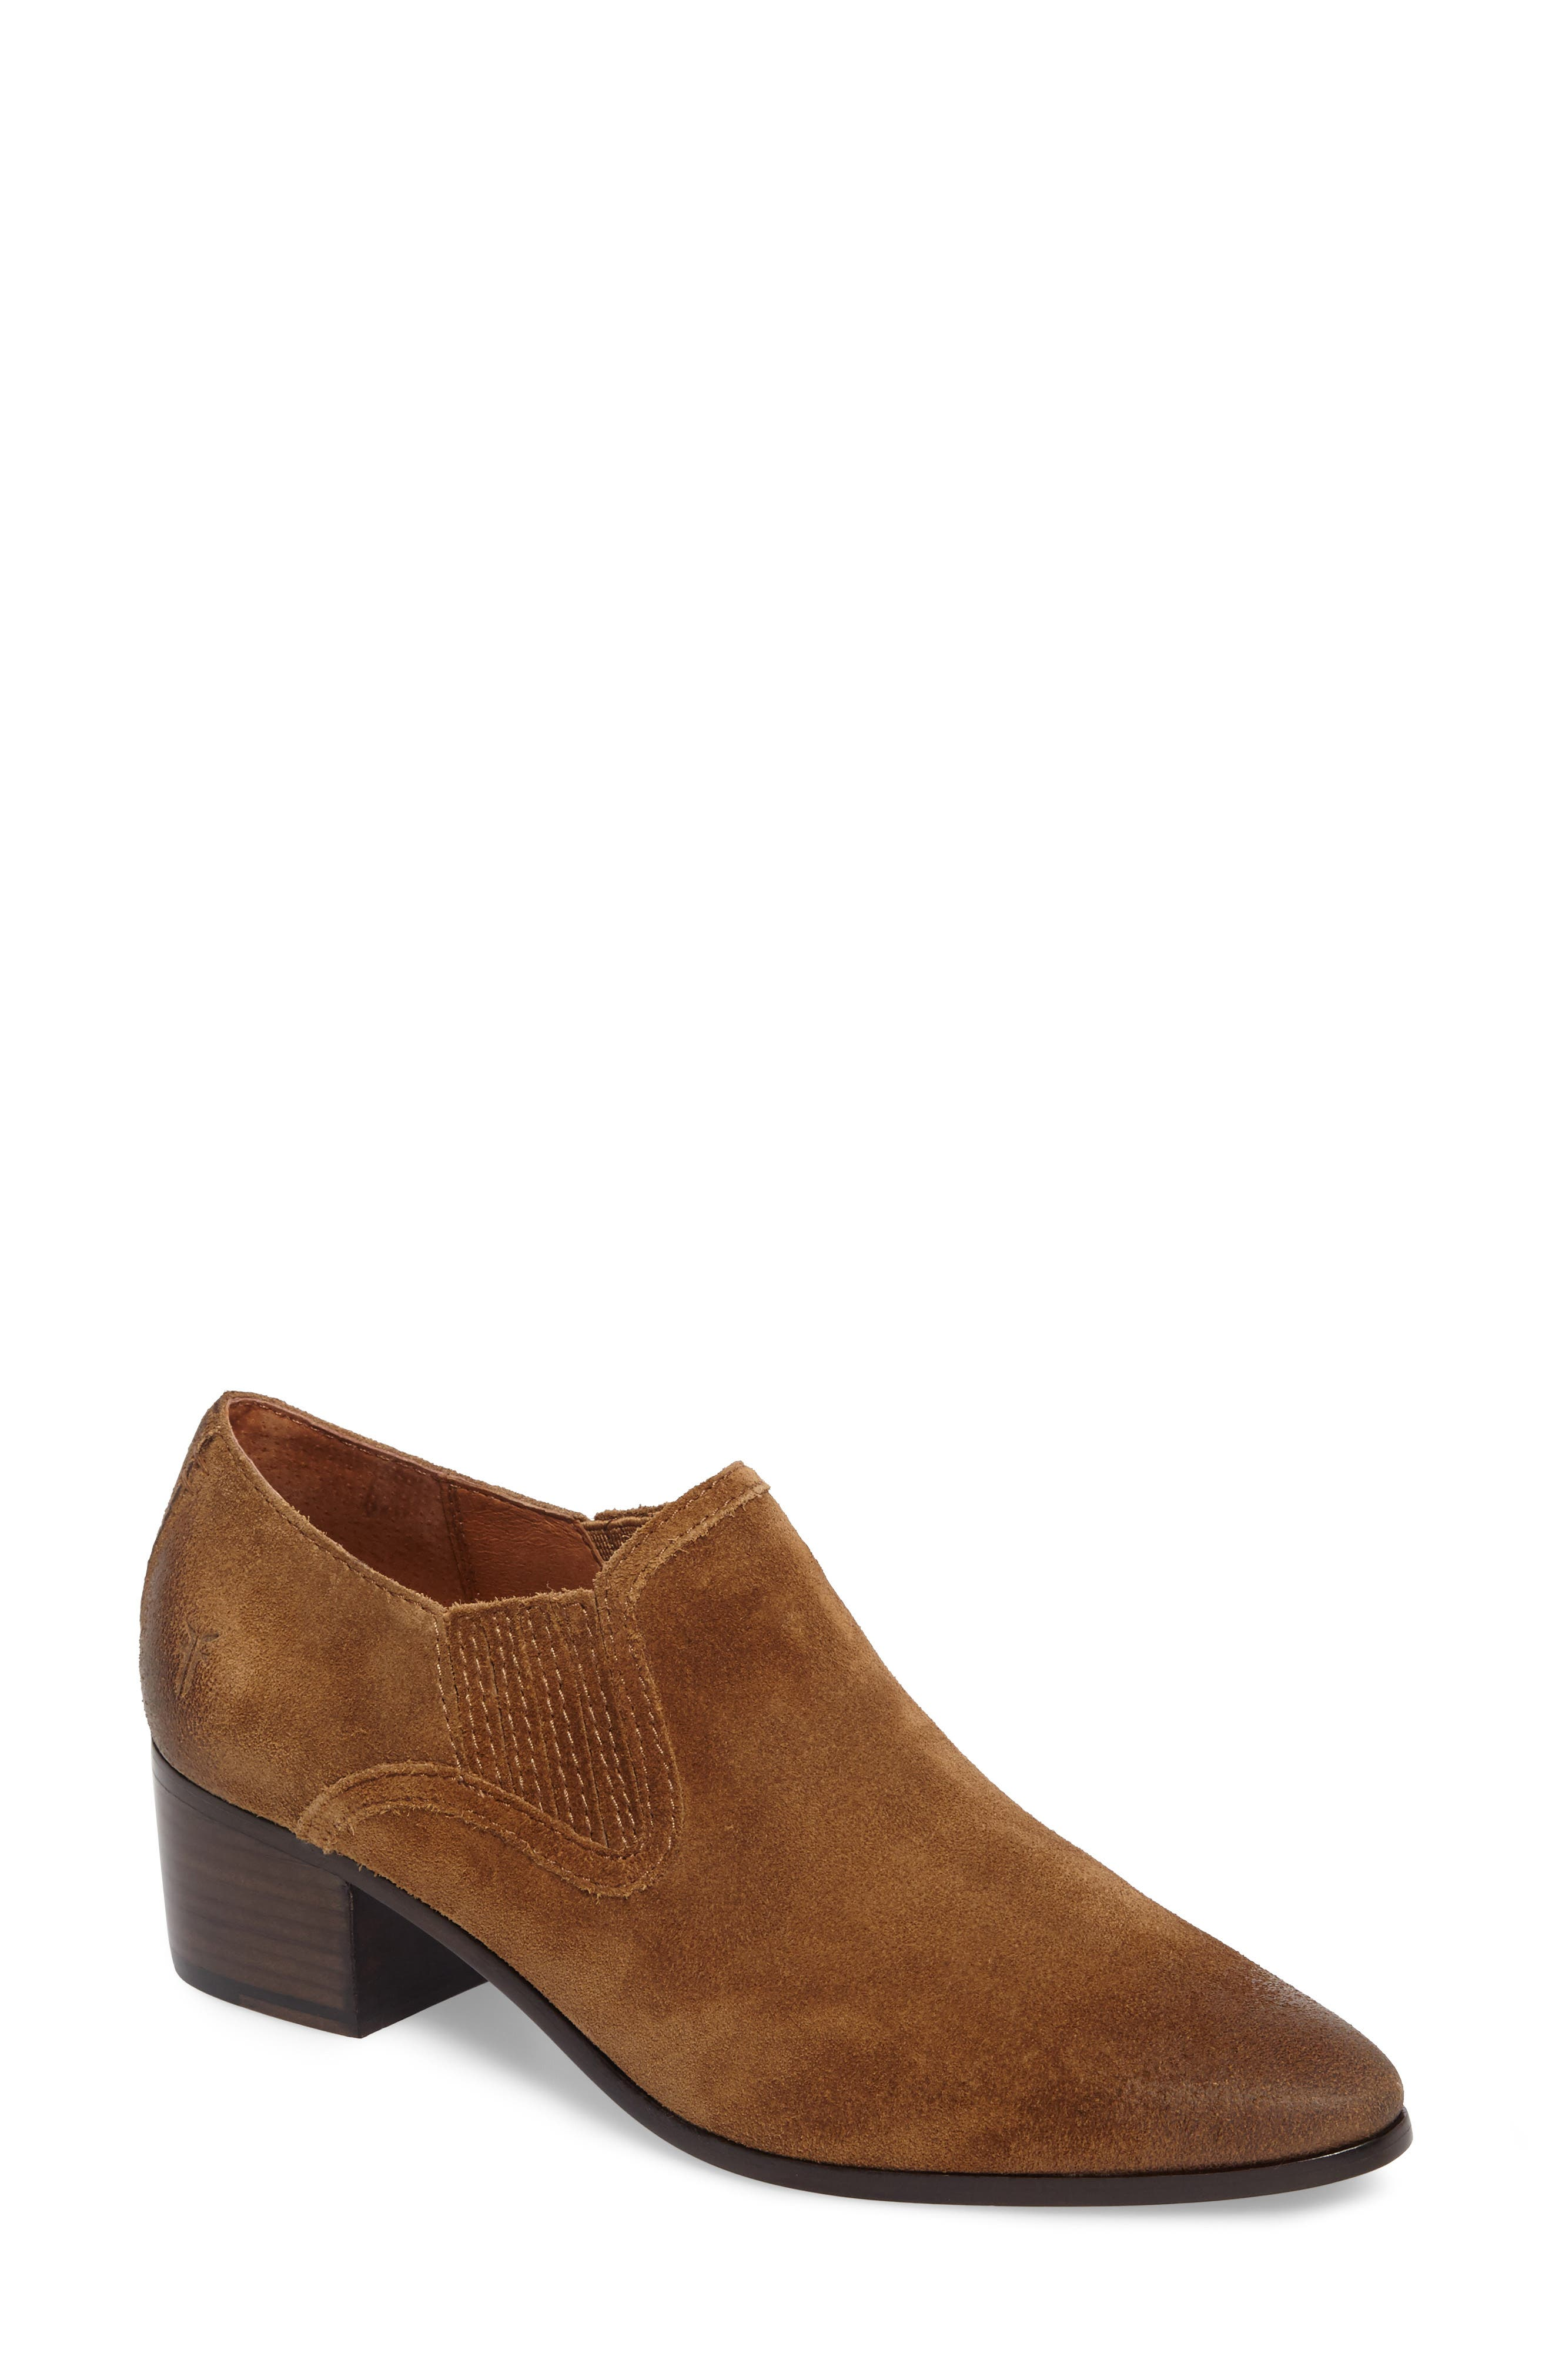 Eleanor Pointy Toe Bootie,                             Main thumbnail 1, color,                             Chestnut